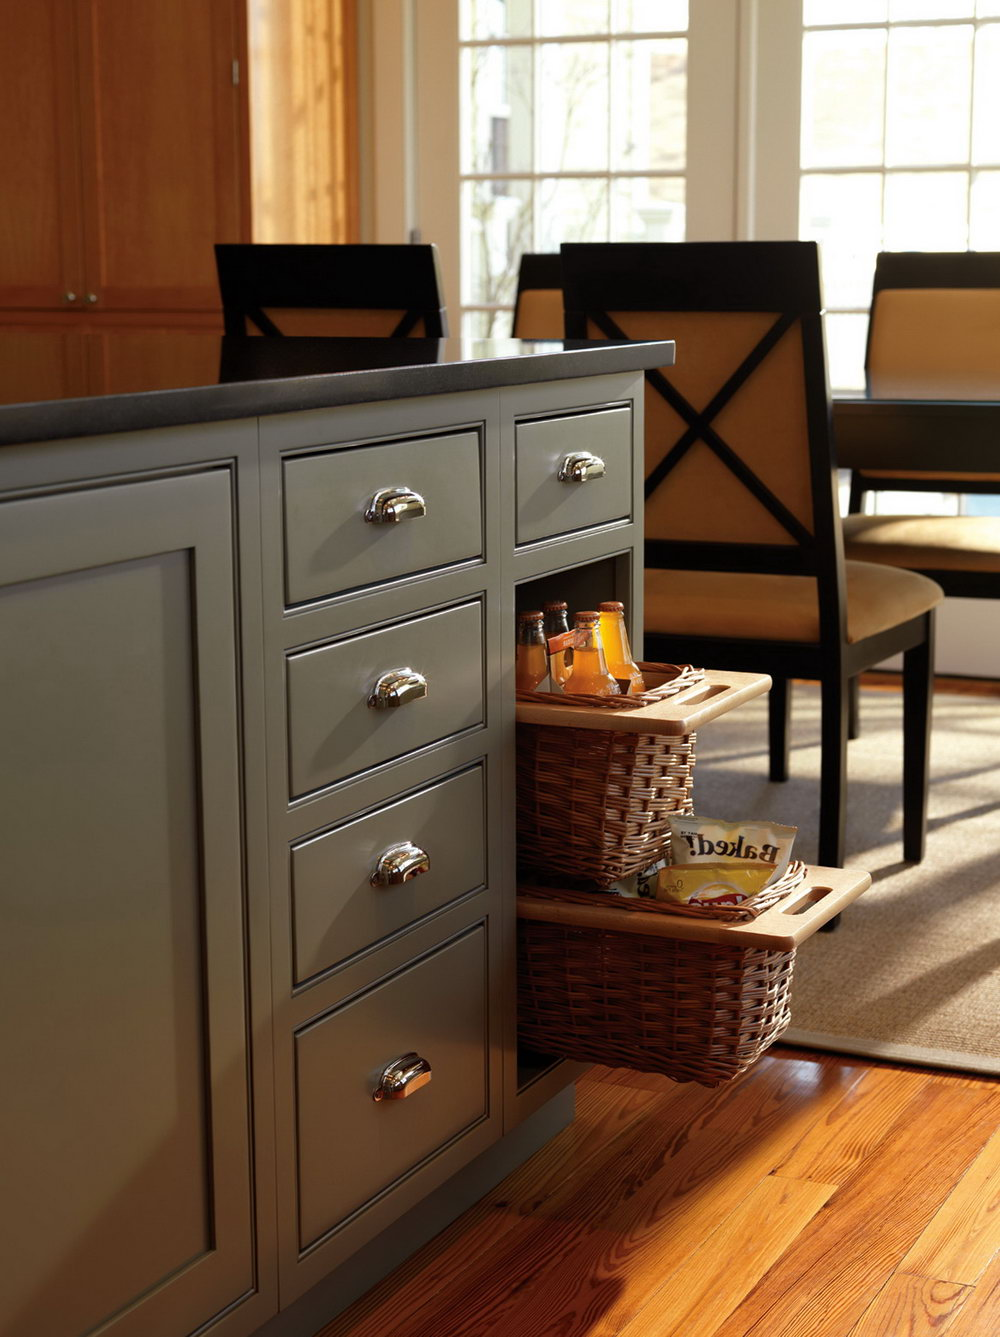 Pull Out Wicker Baskets For Kitchen Cabinets